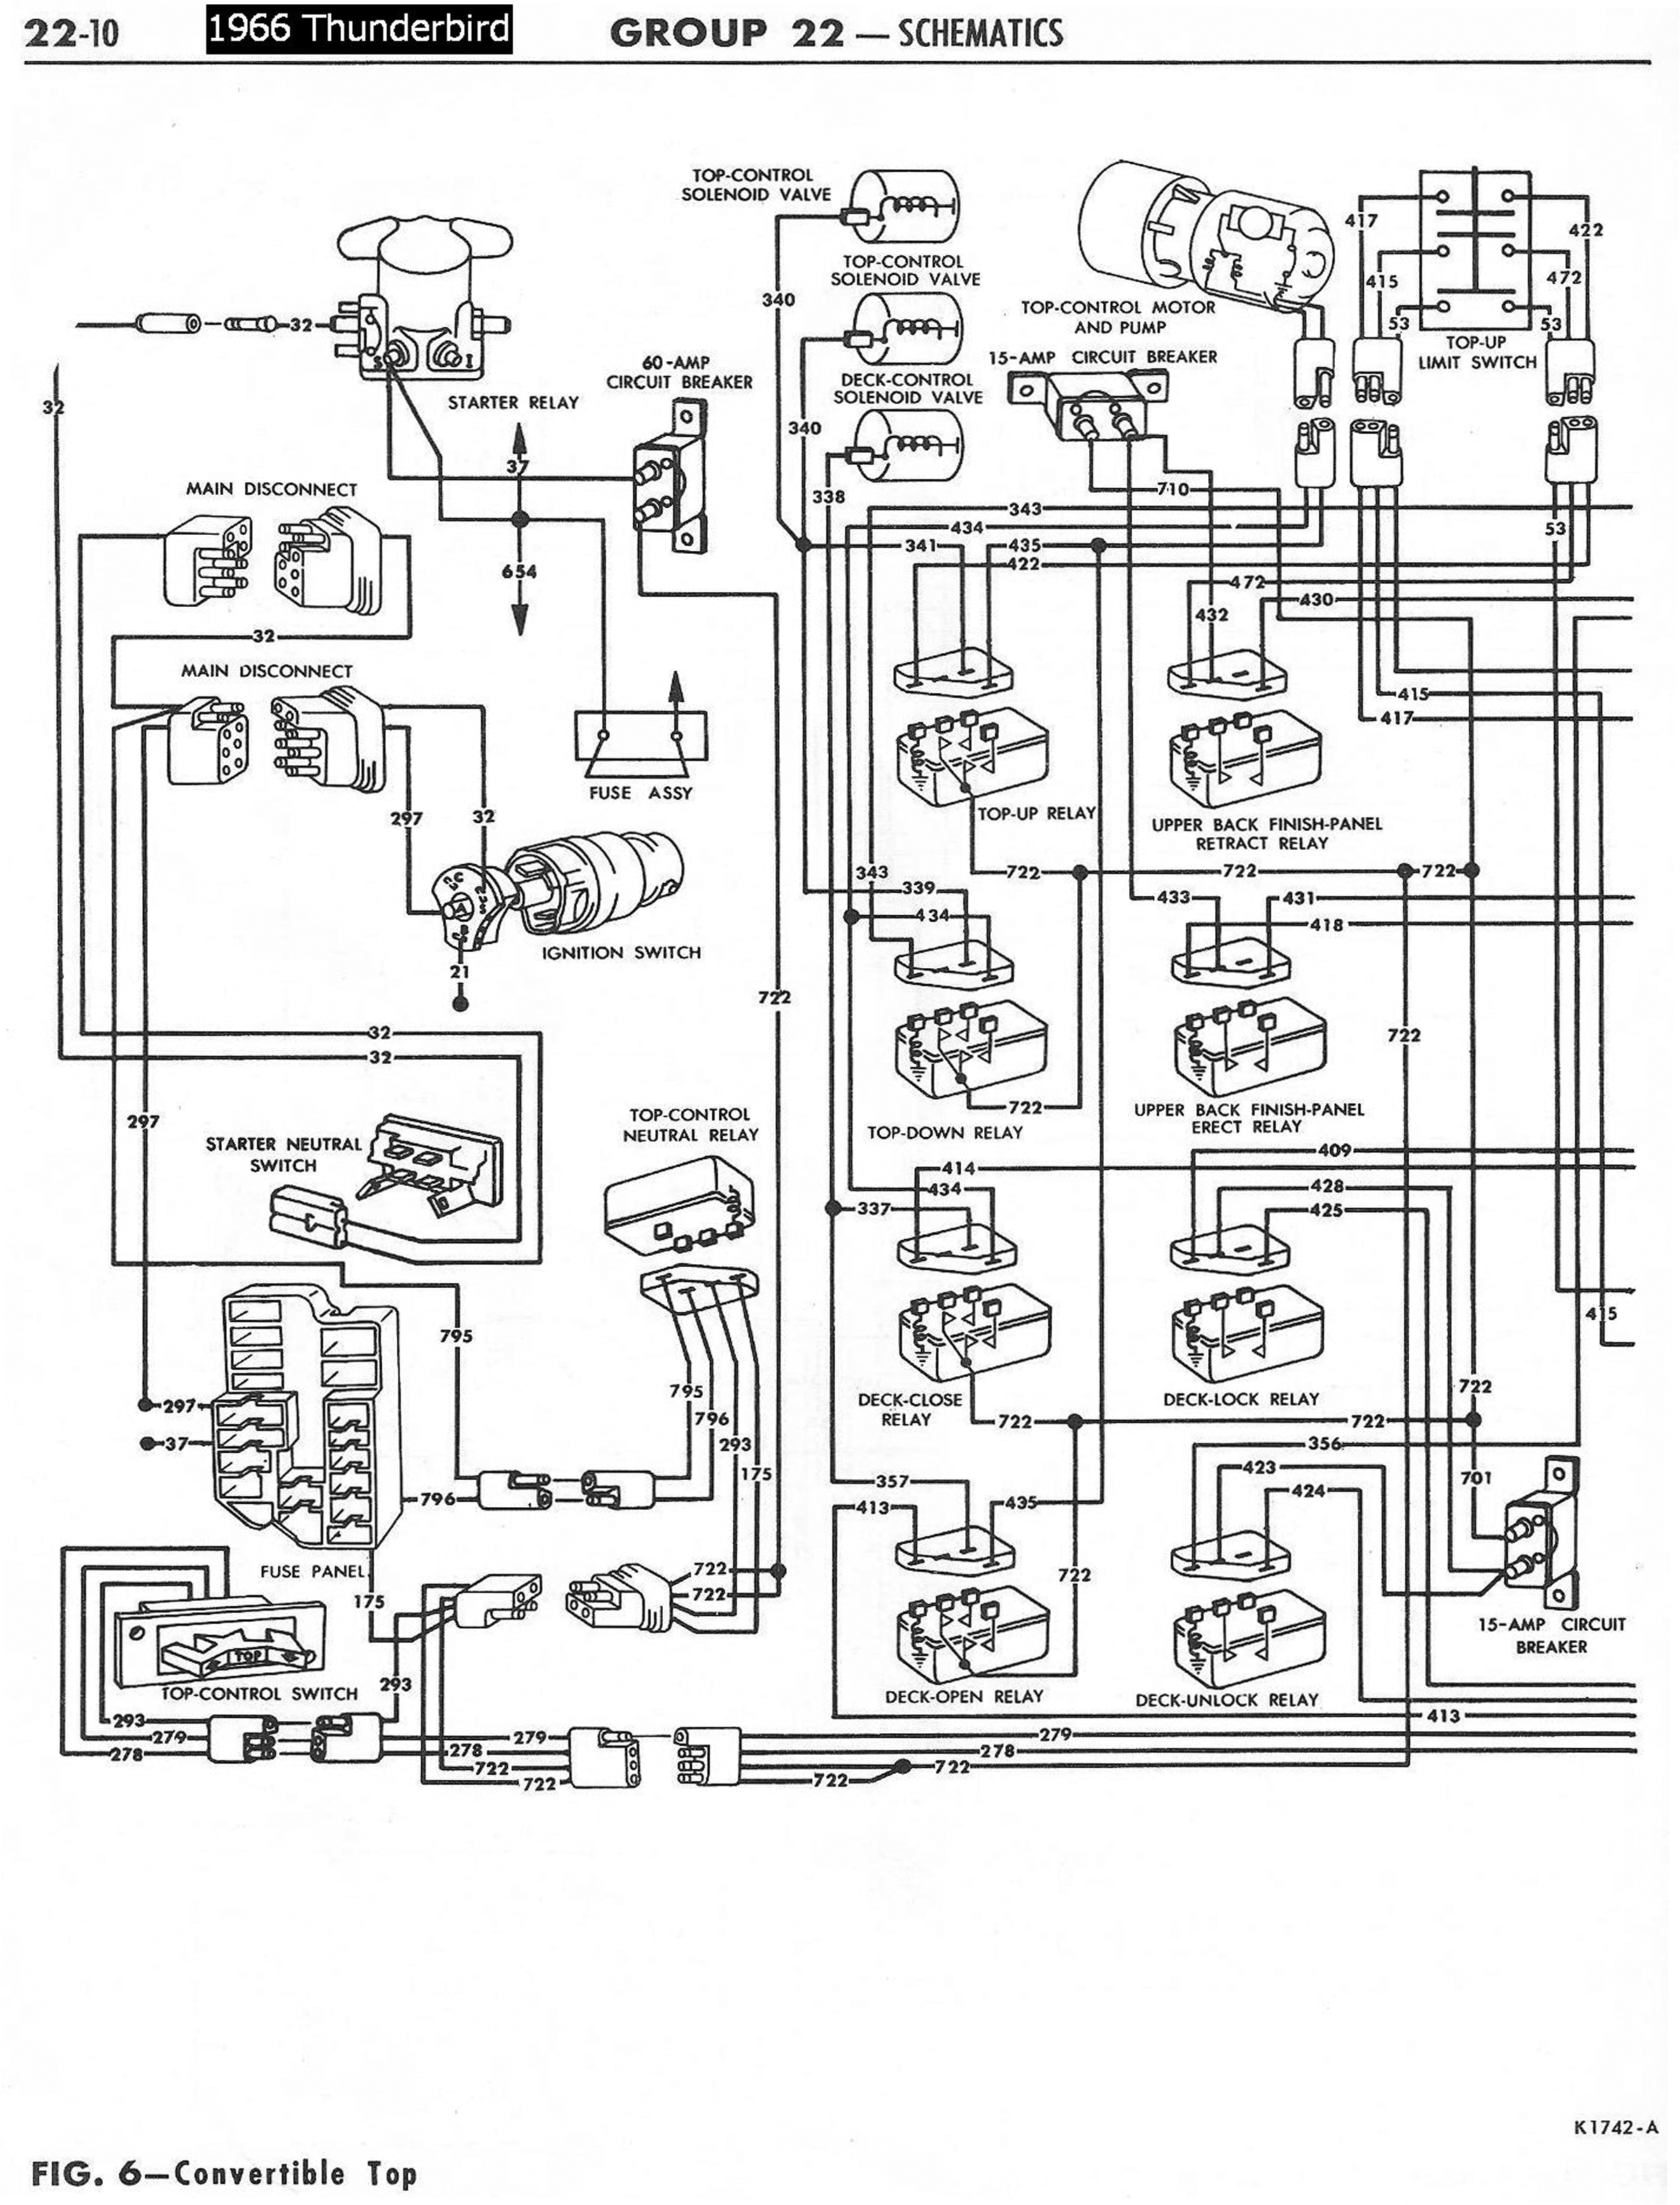 66TbirdConvertibleTopSchematicLeft 1958 68 ford electrical schematics 1957 Ford Wiring Diagram at fashall.co